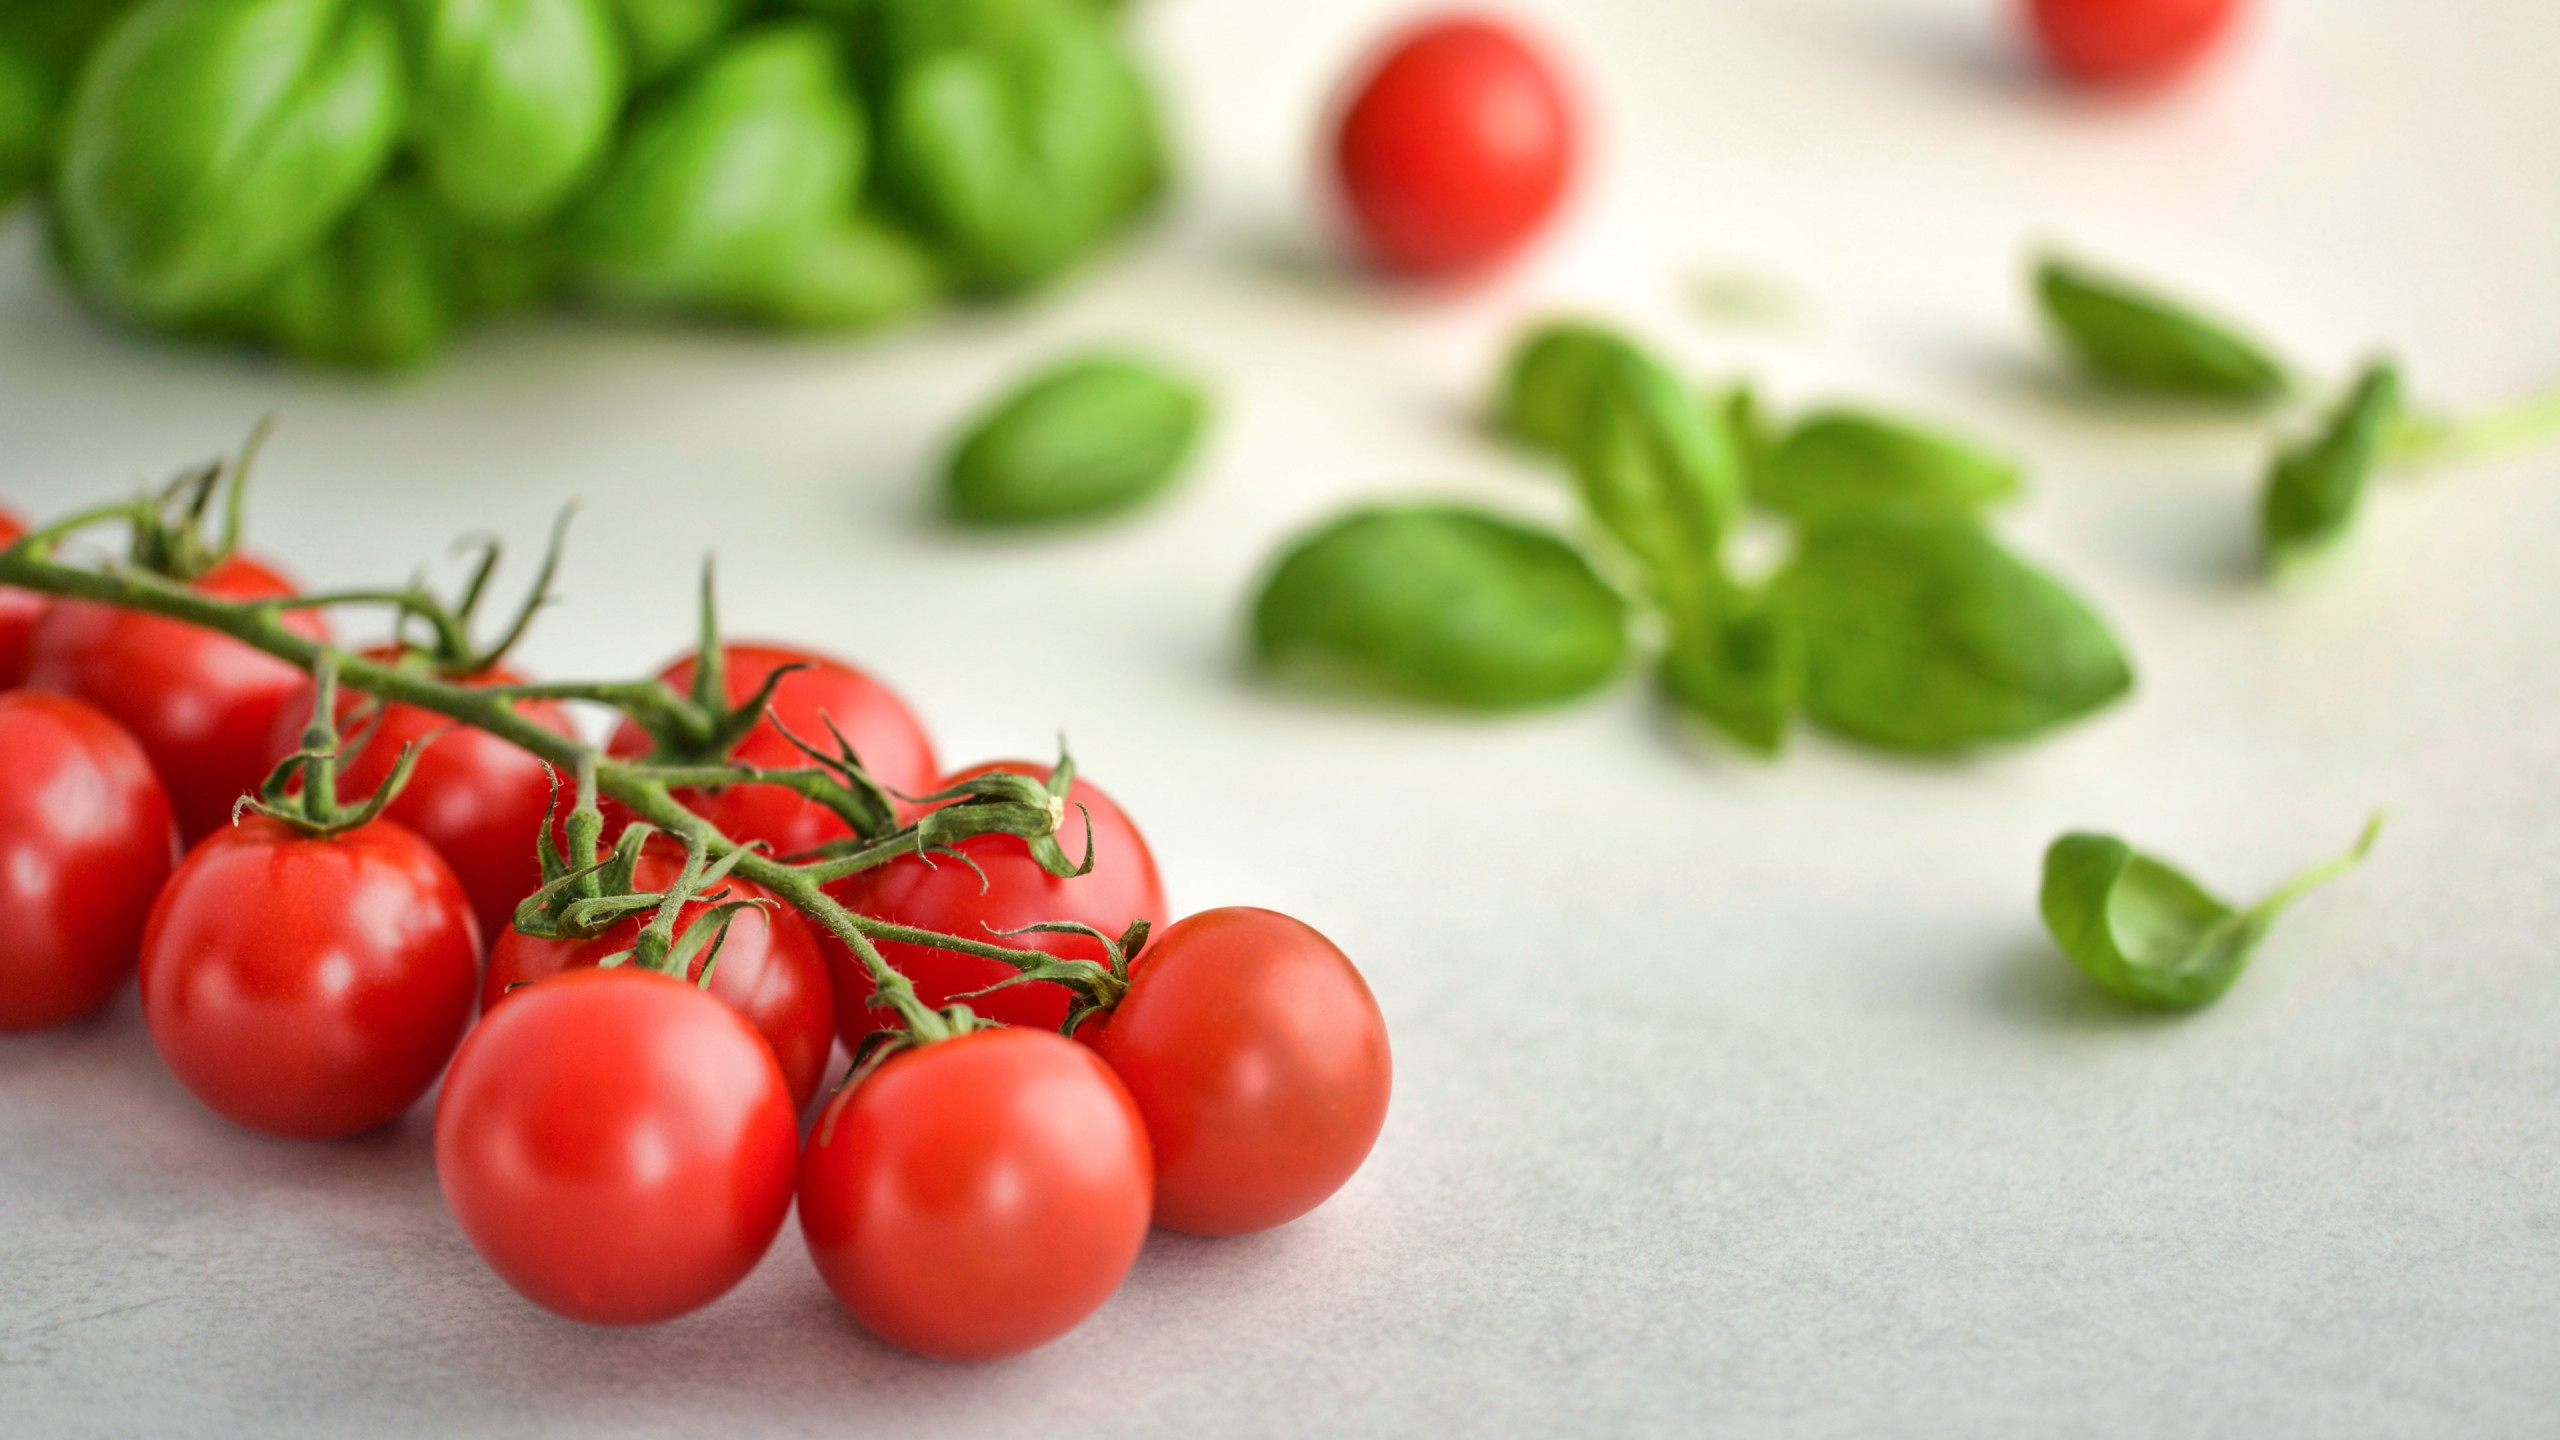 Tomatoes and basil wallpaper 2560x1440